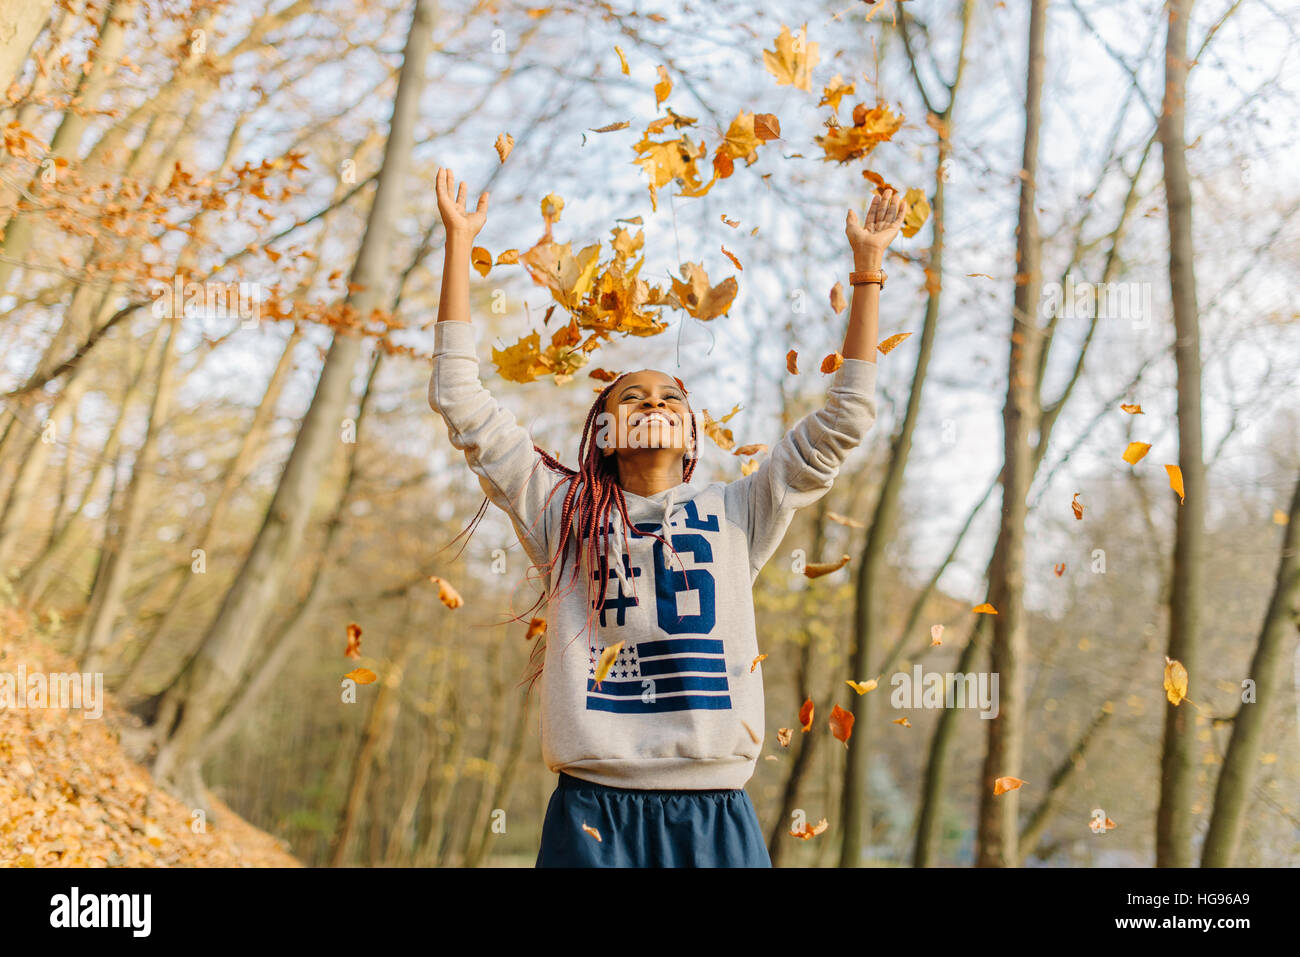 African girl Playing with bouquet de feuilles, bénéficiant d'automne chaud jour en parc. Avoir du Photo Stock